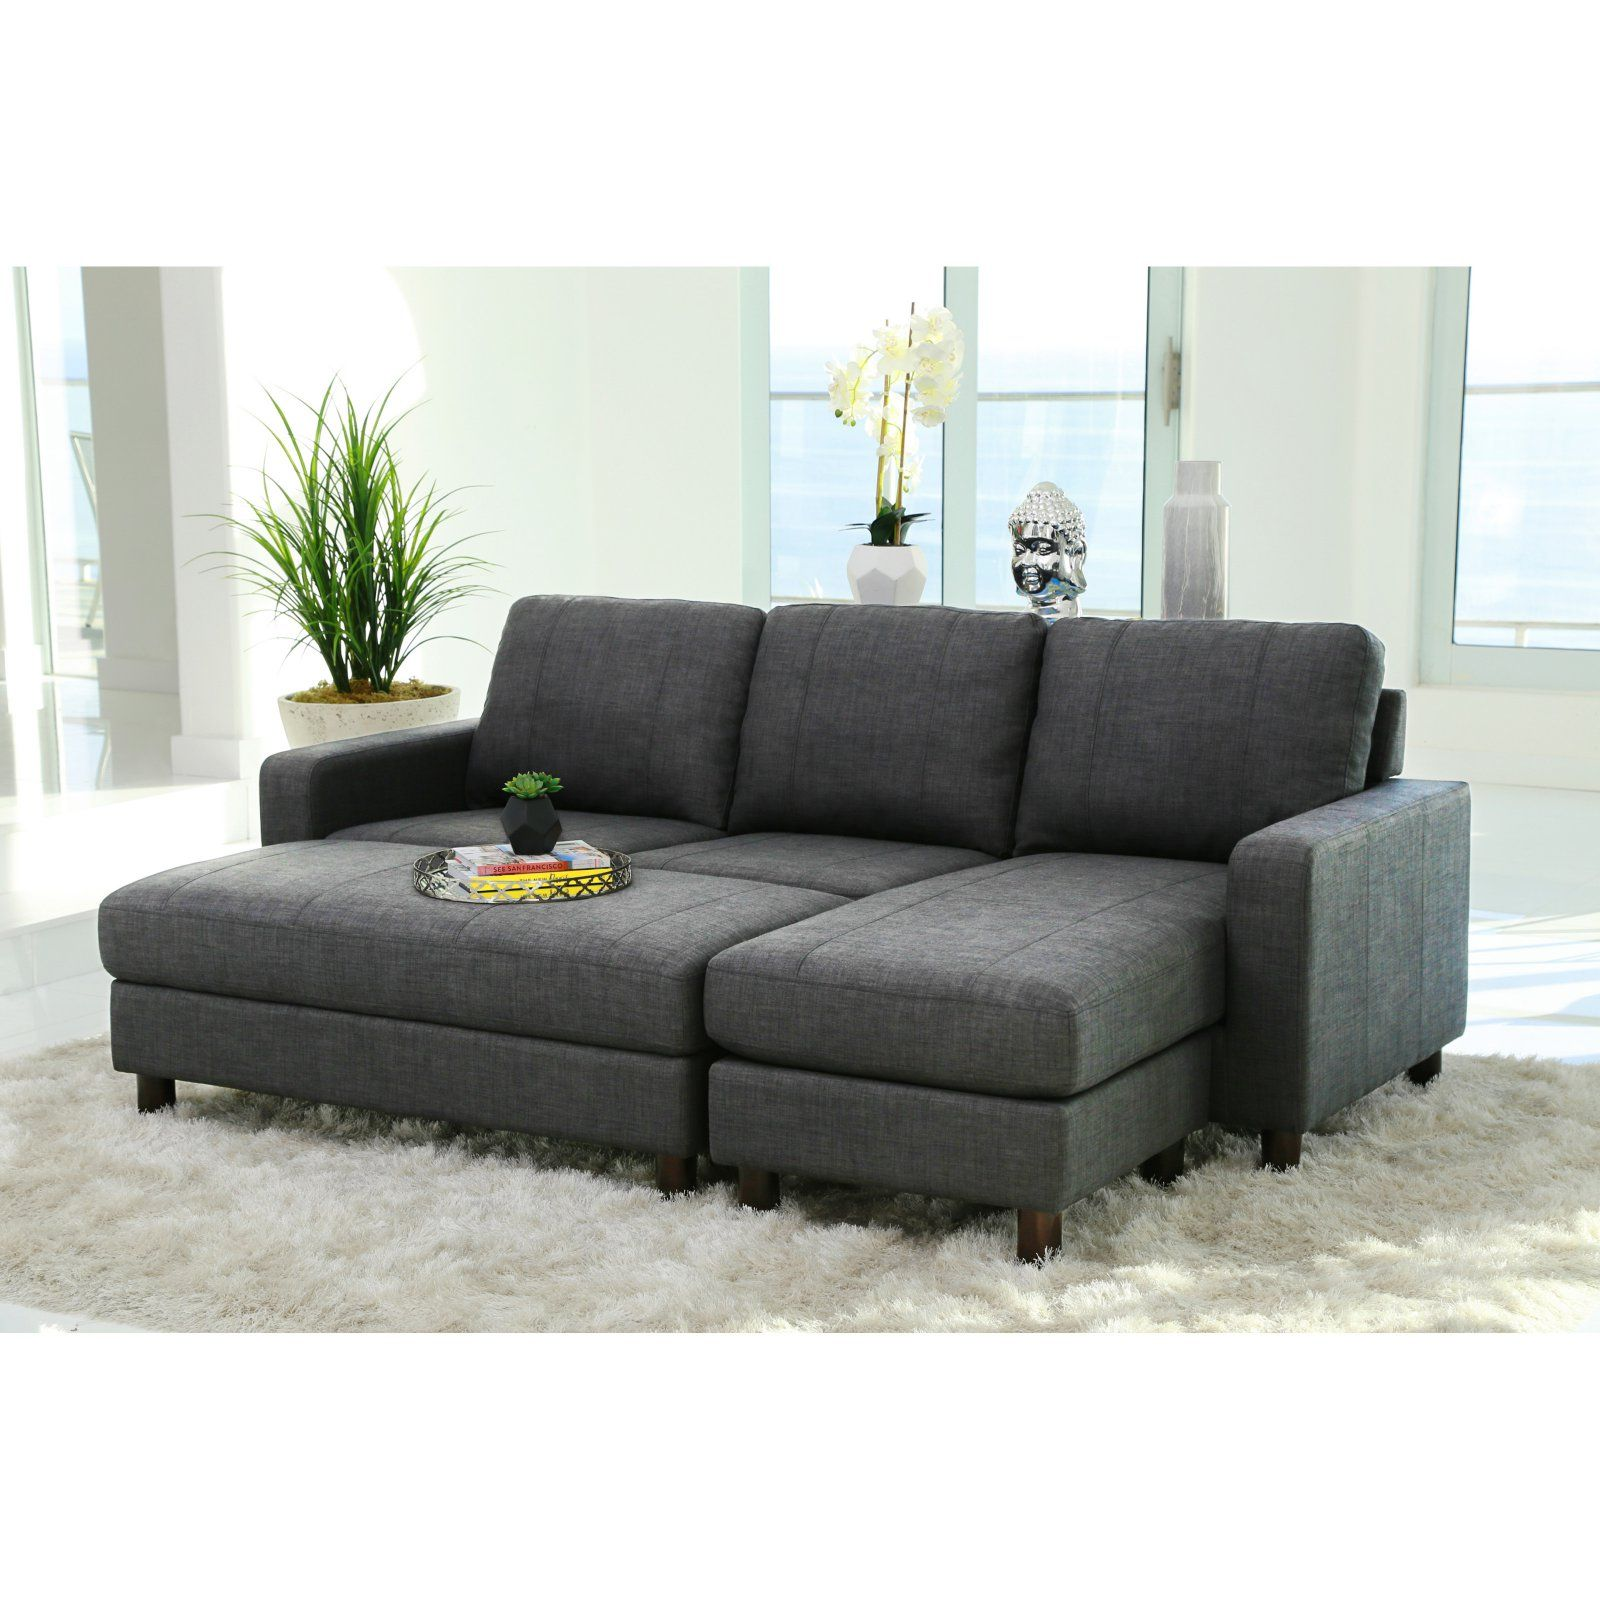 Abbyson Stanford Fabric Reversible Sectional Sofa With Storage Ottoman With Images Sectional Sofa Small Sectional Sofa Couch With Ottoman